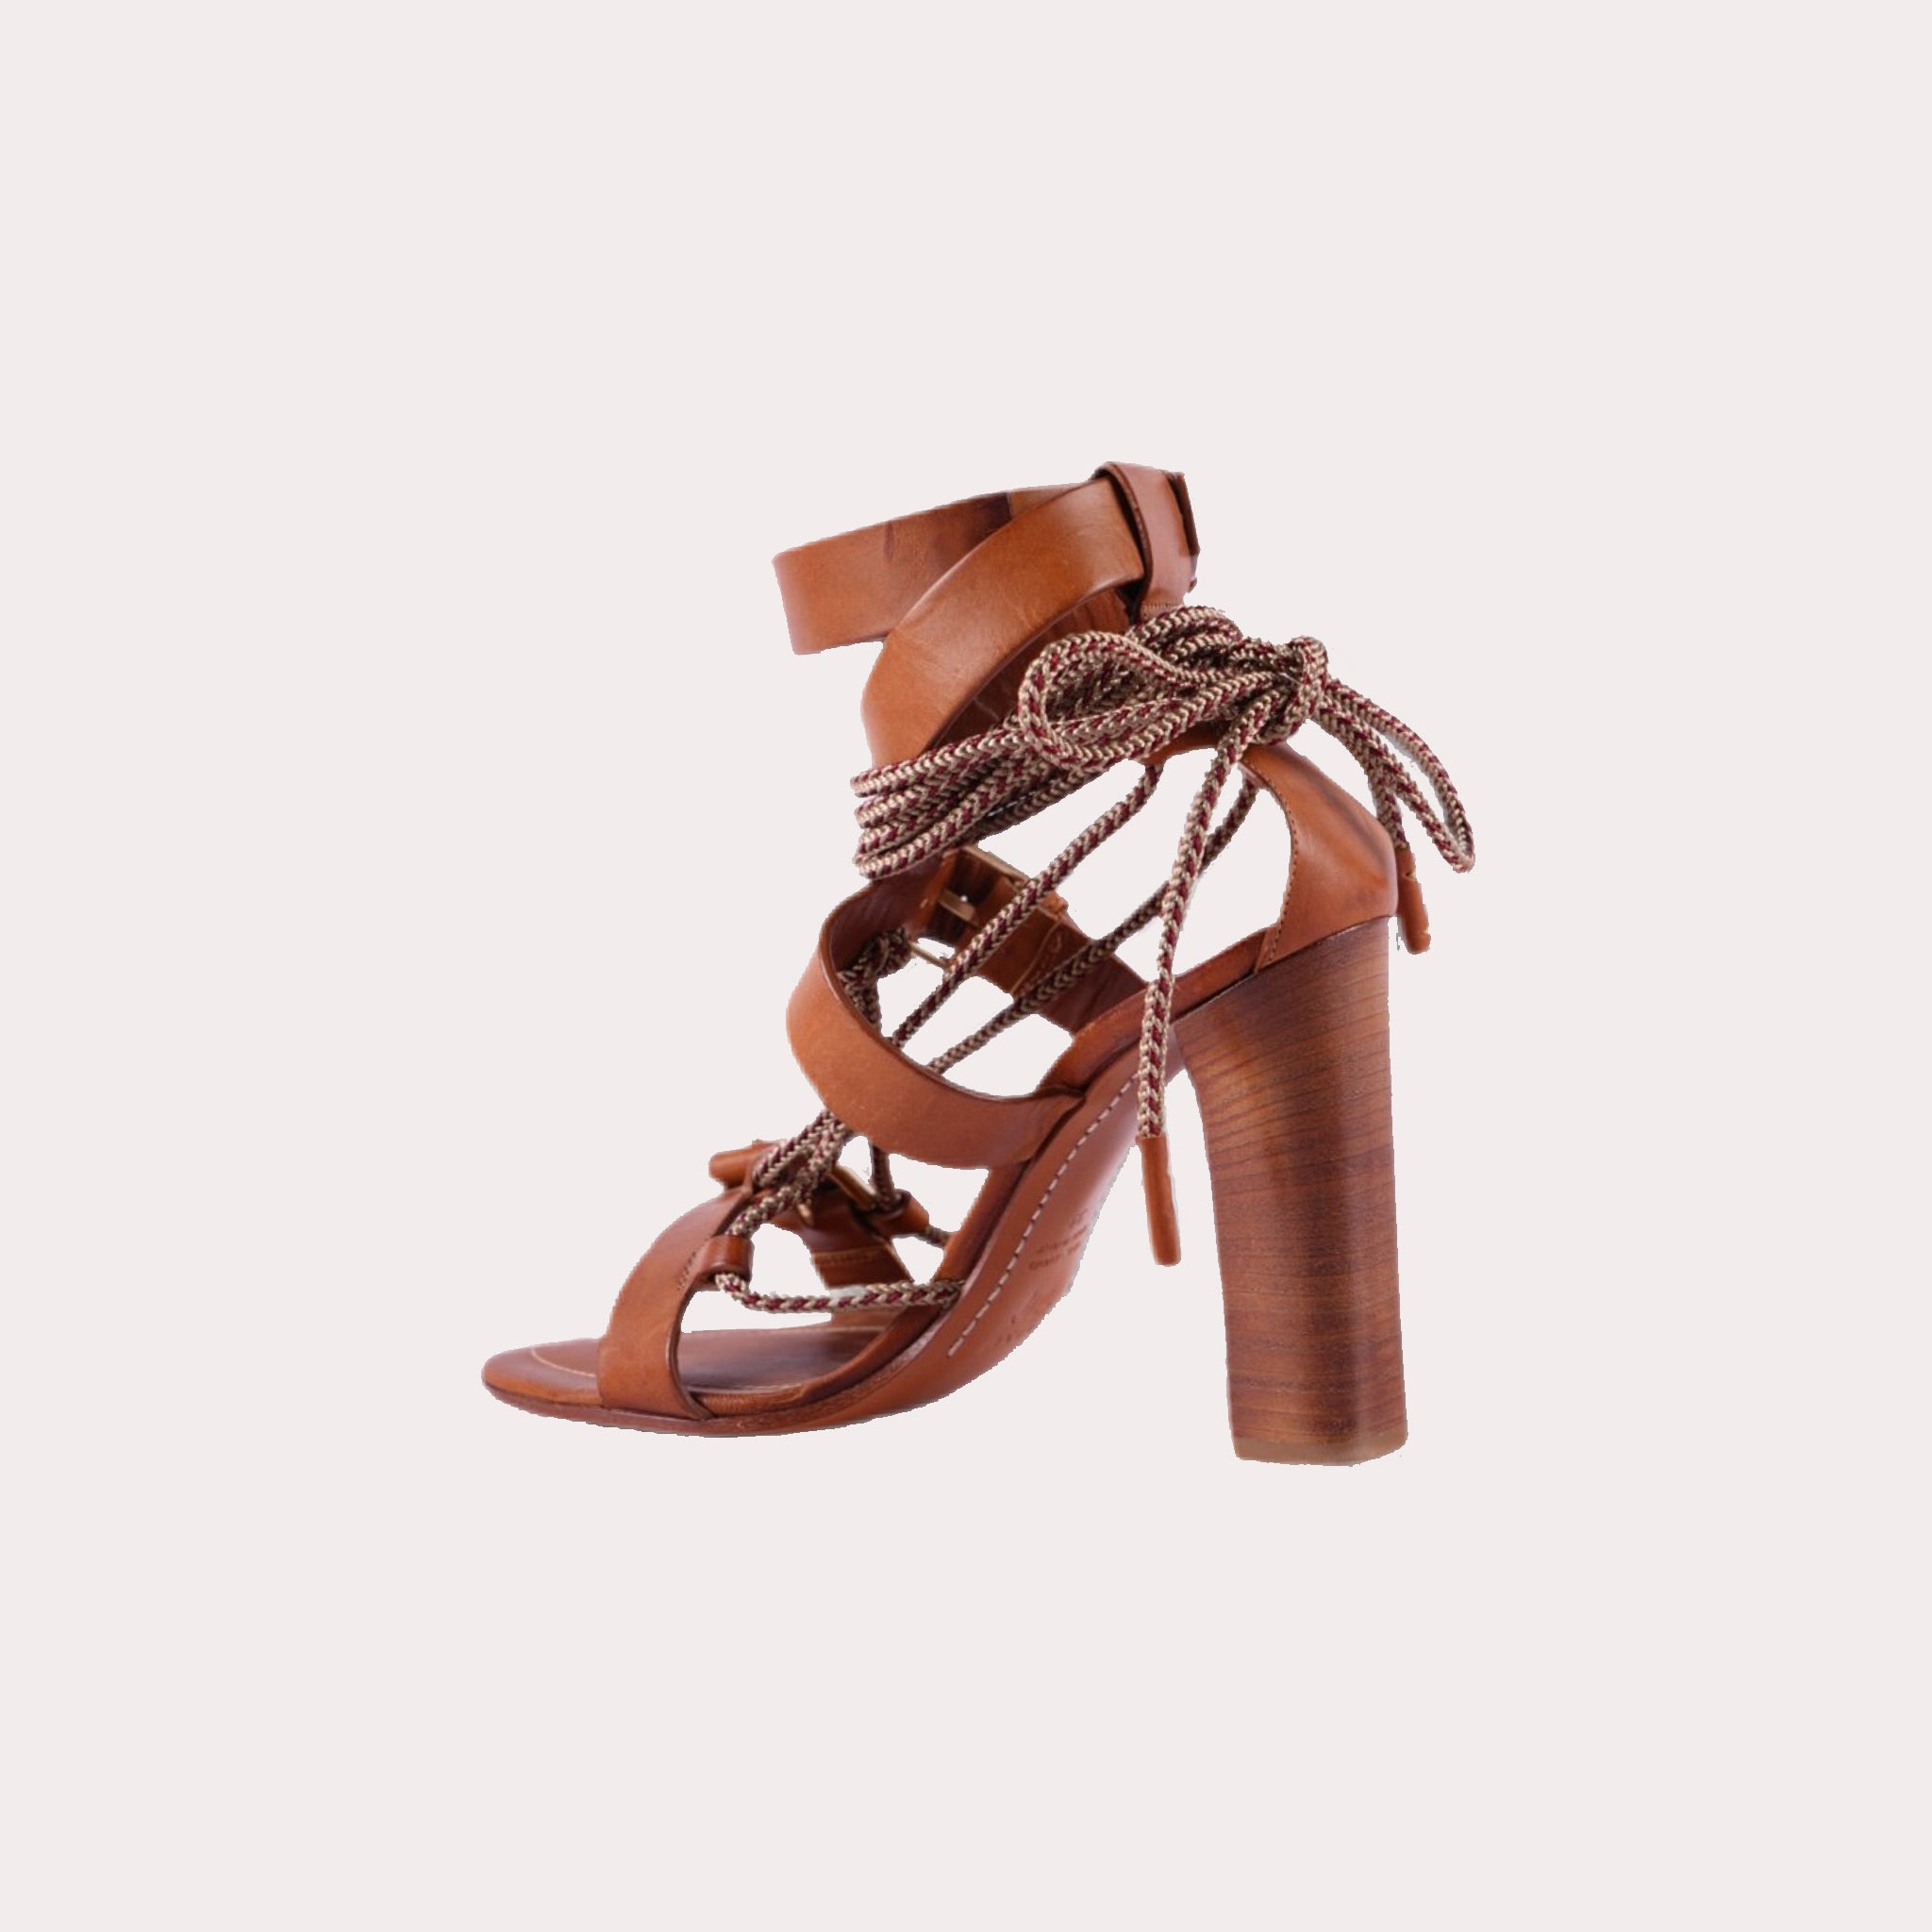 Tan Rope-Trimmed Leather Sandals